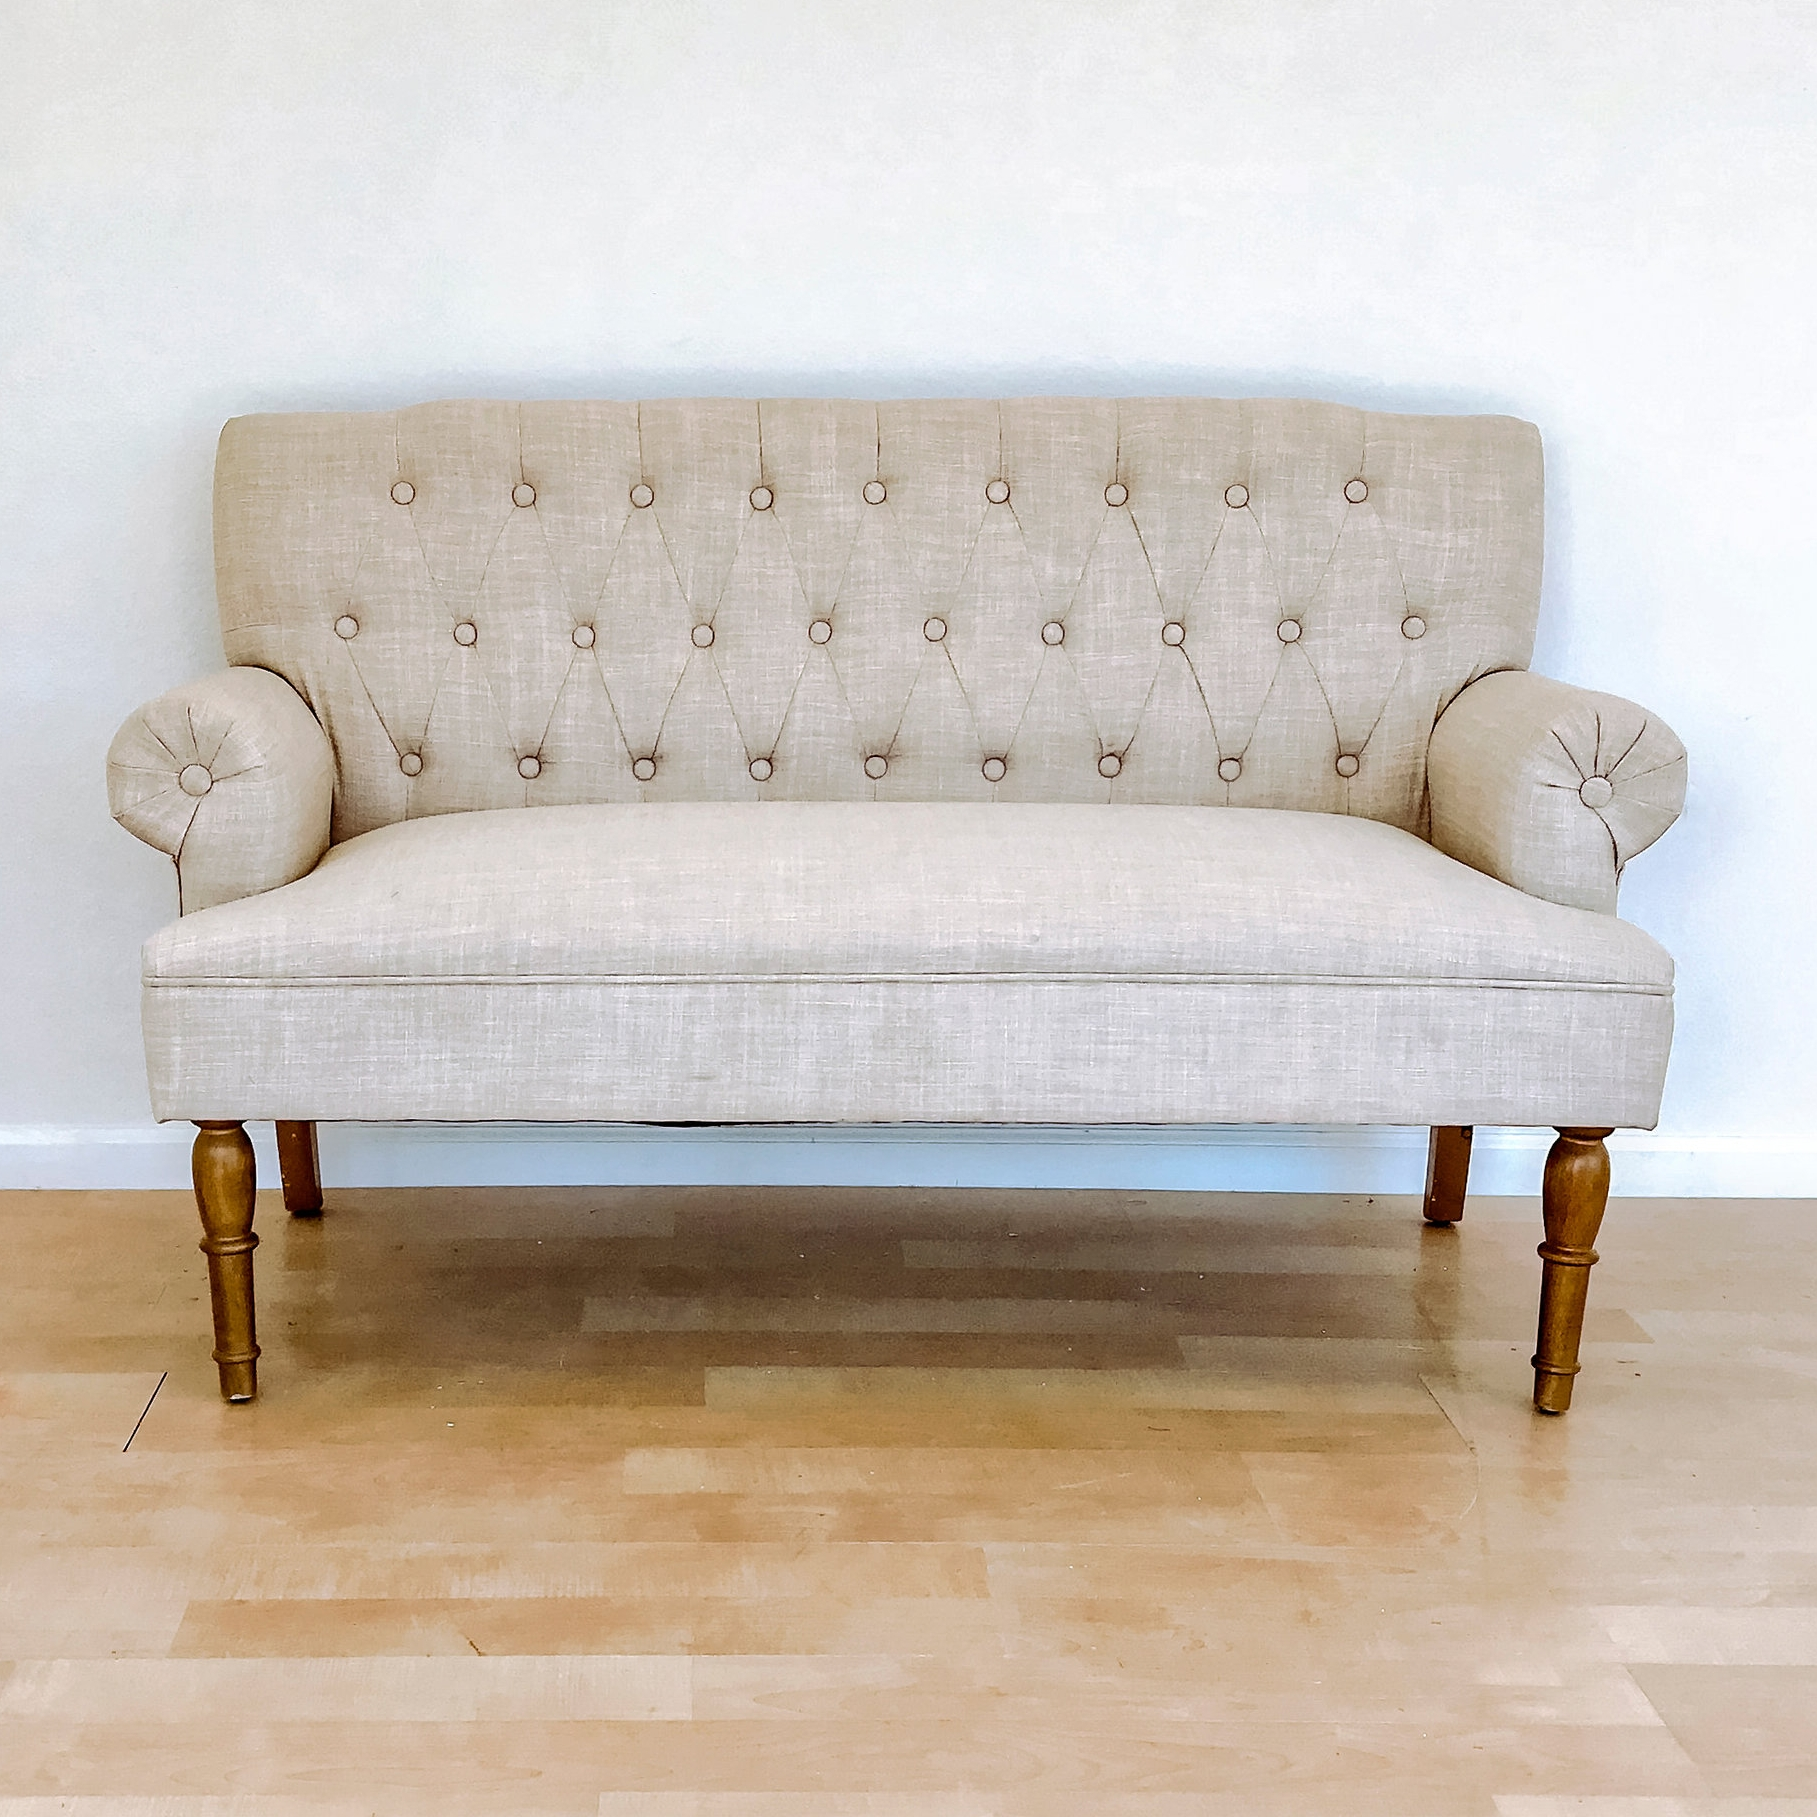 renee landry eventslinen tufted settee loveseat rolled arm wedding rentals.jpg